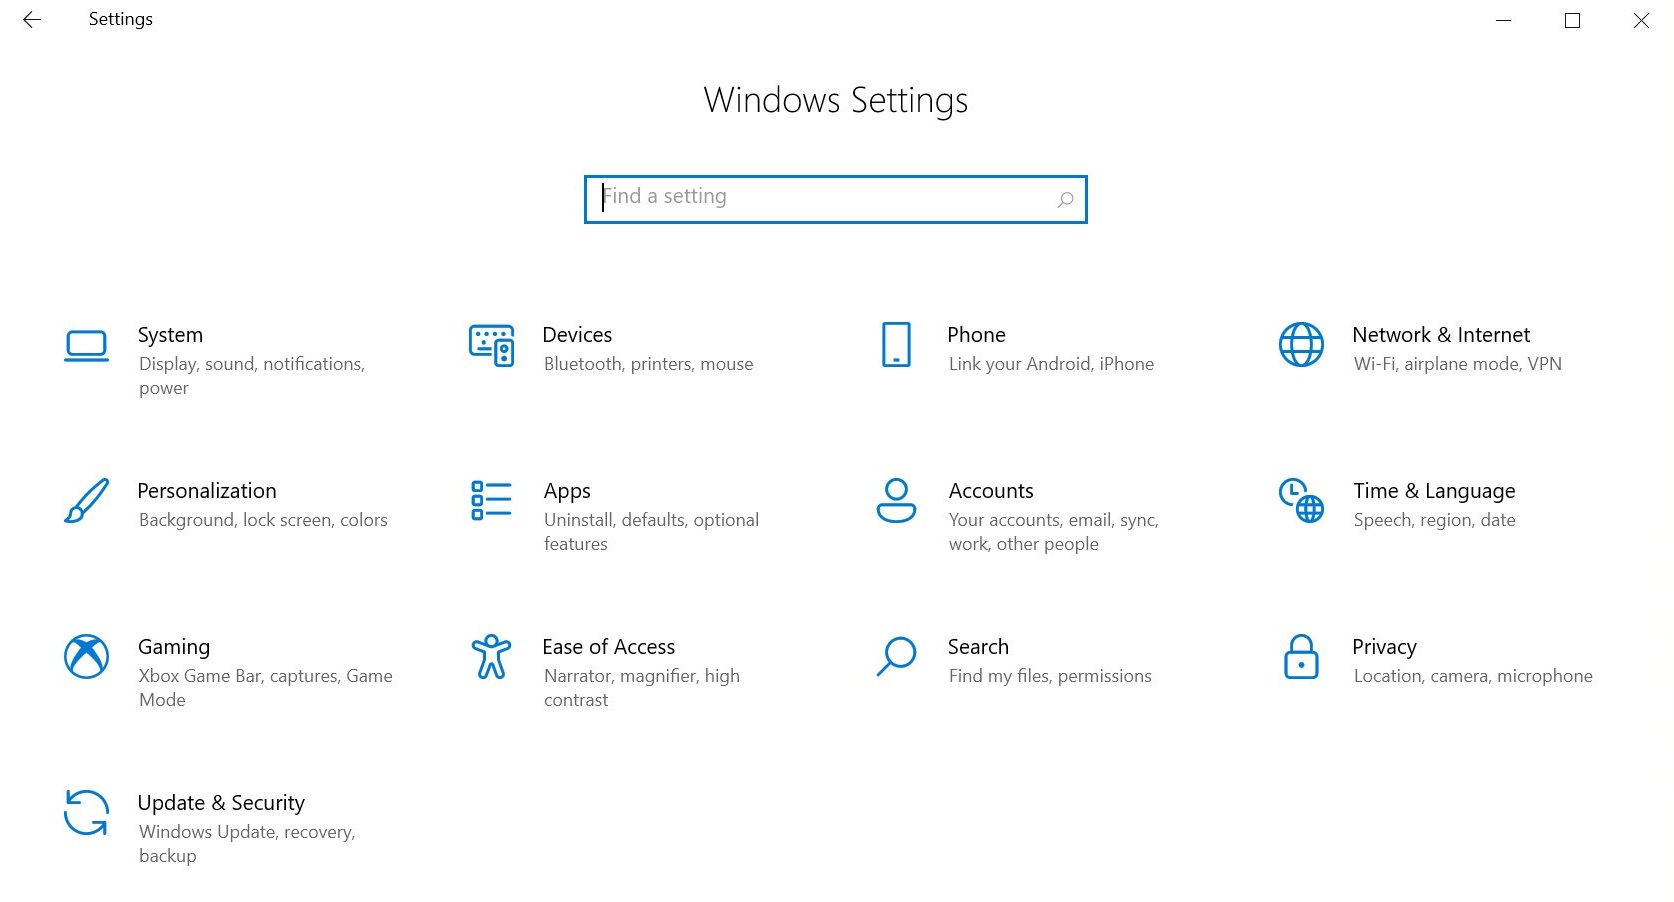 Windows 10 Sun Valley update reveals 'refreshed' system icons with Fluent UI Windows-10-system-settings.jpg